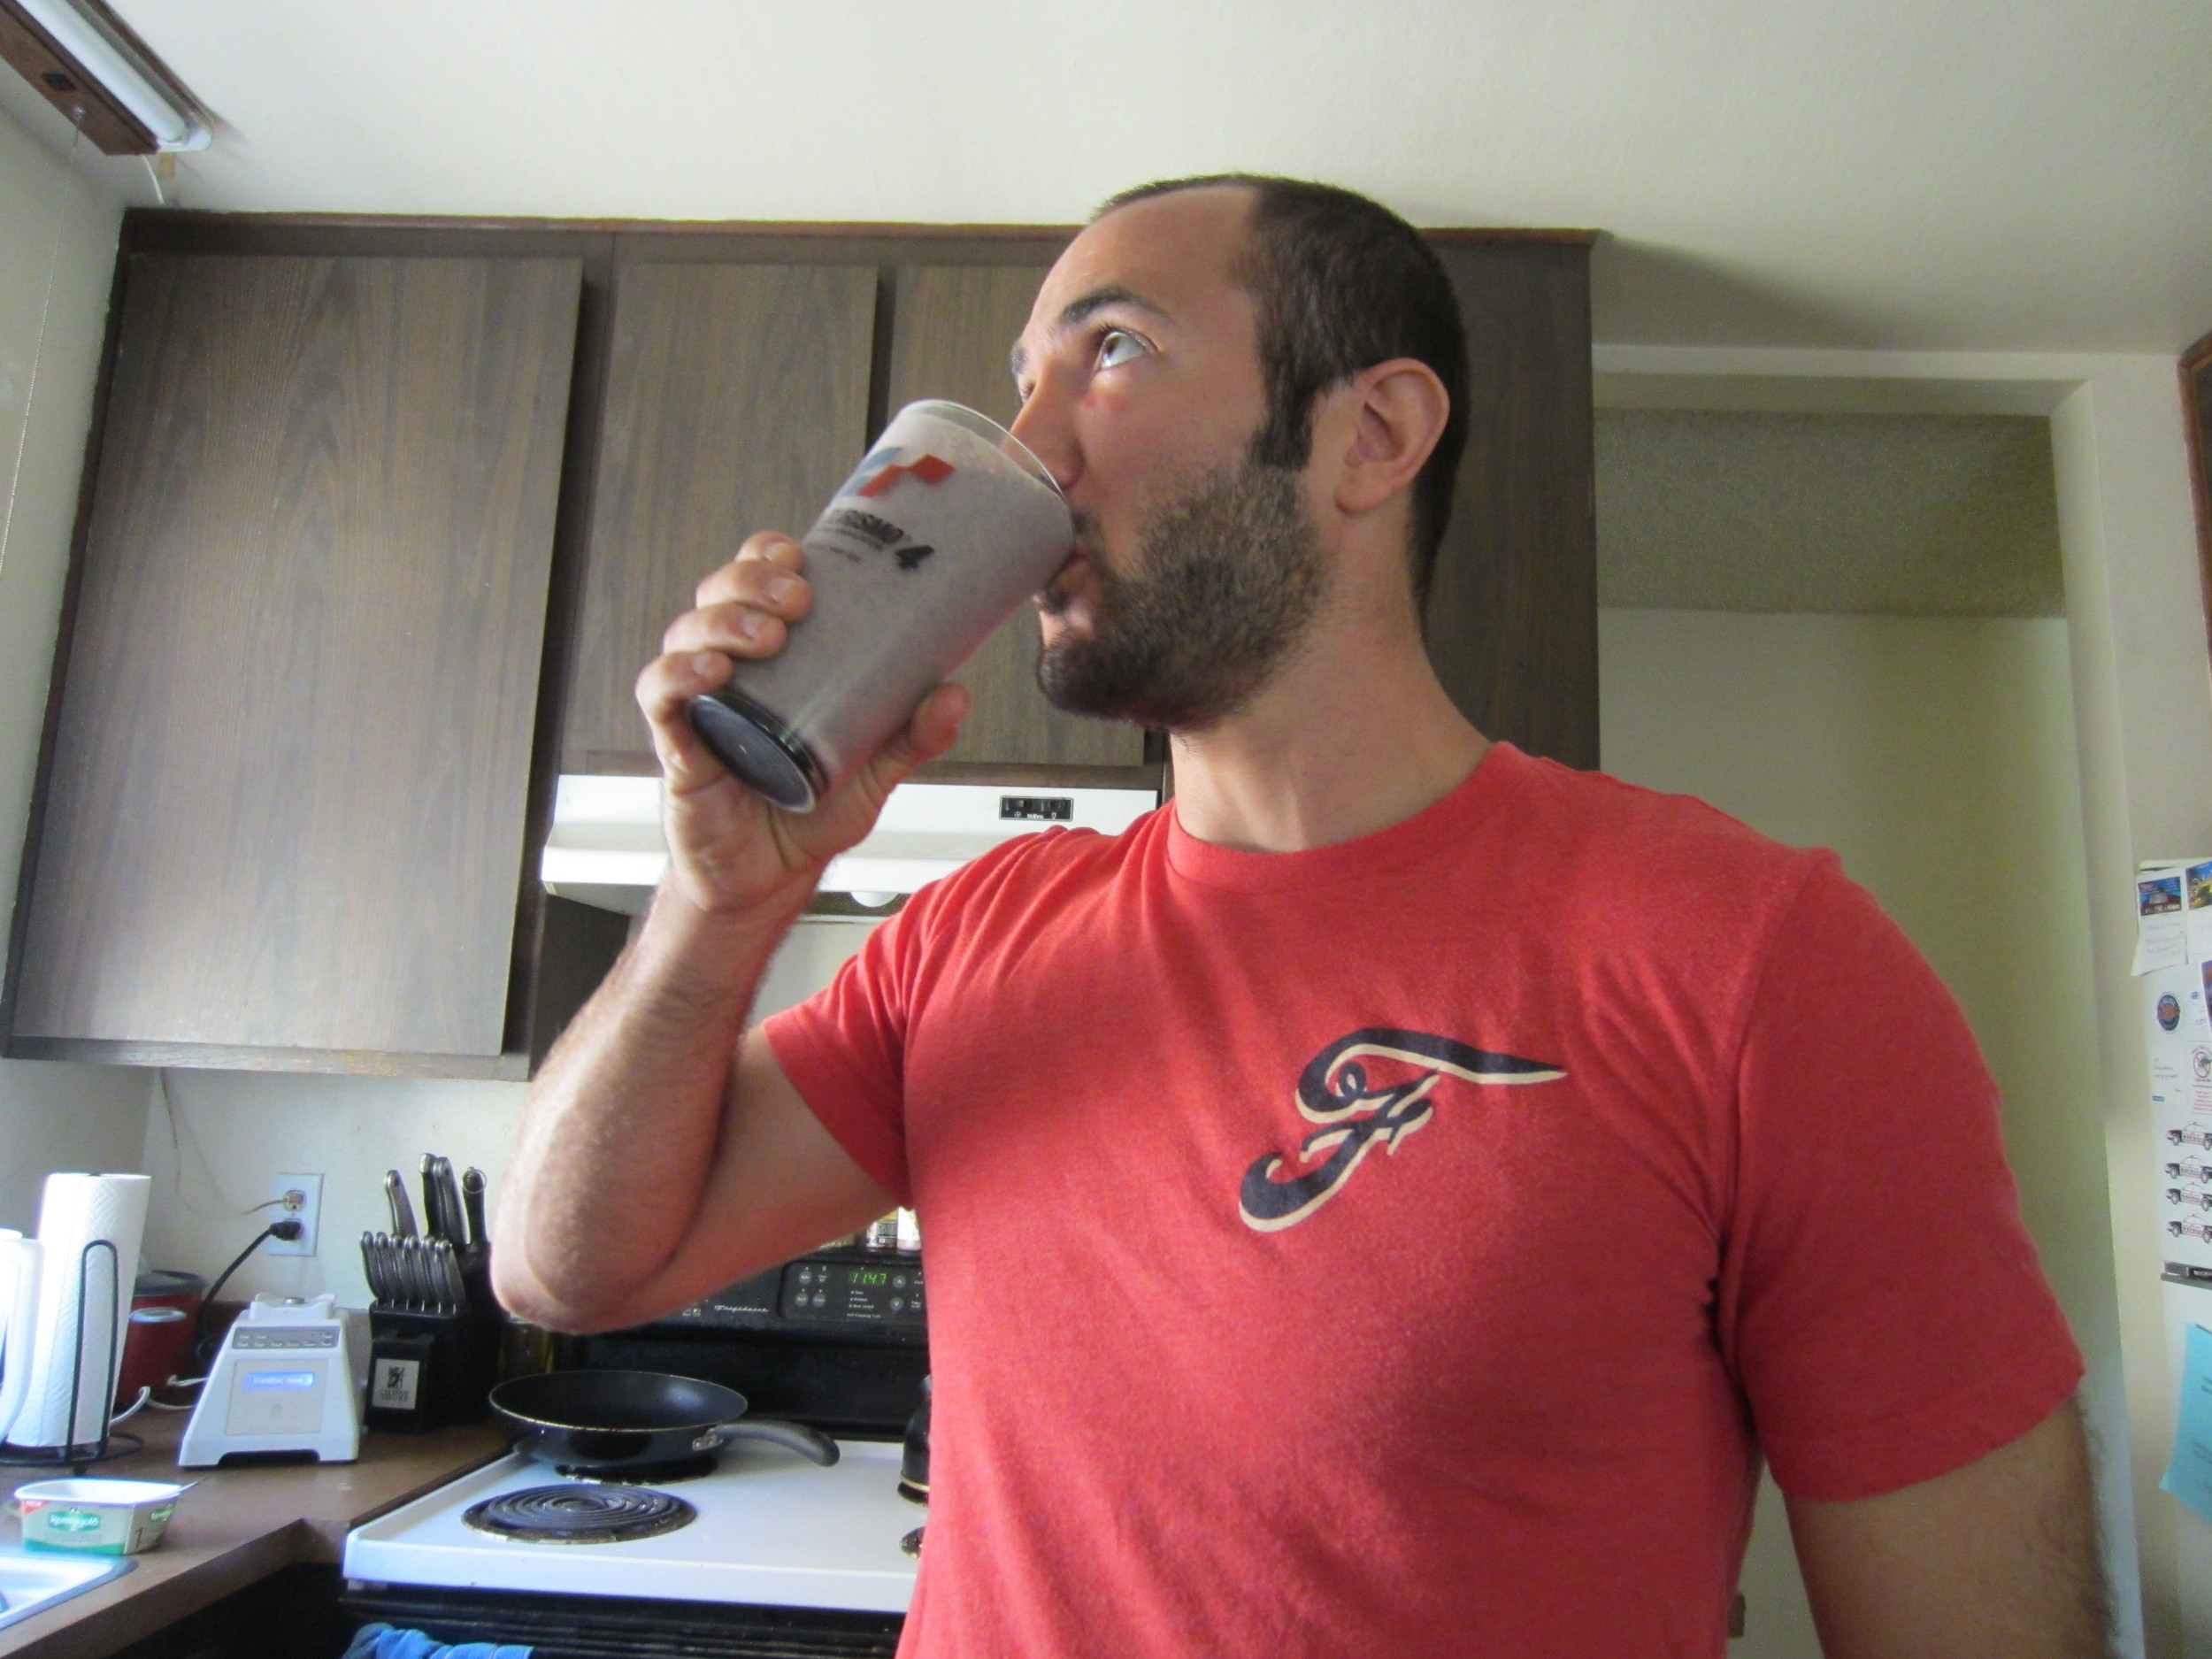 Gulping down a smoothie.